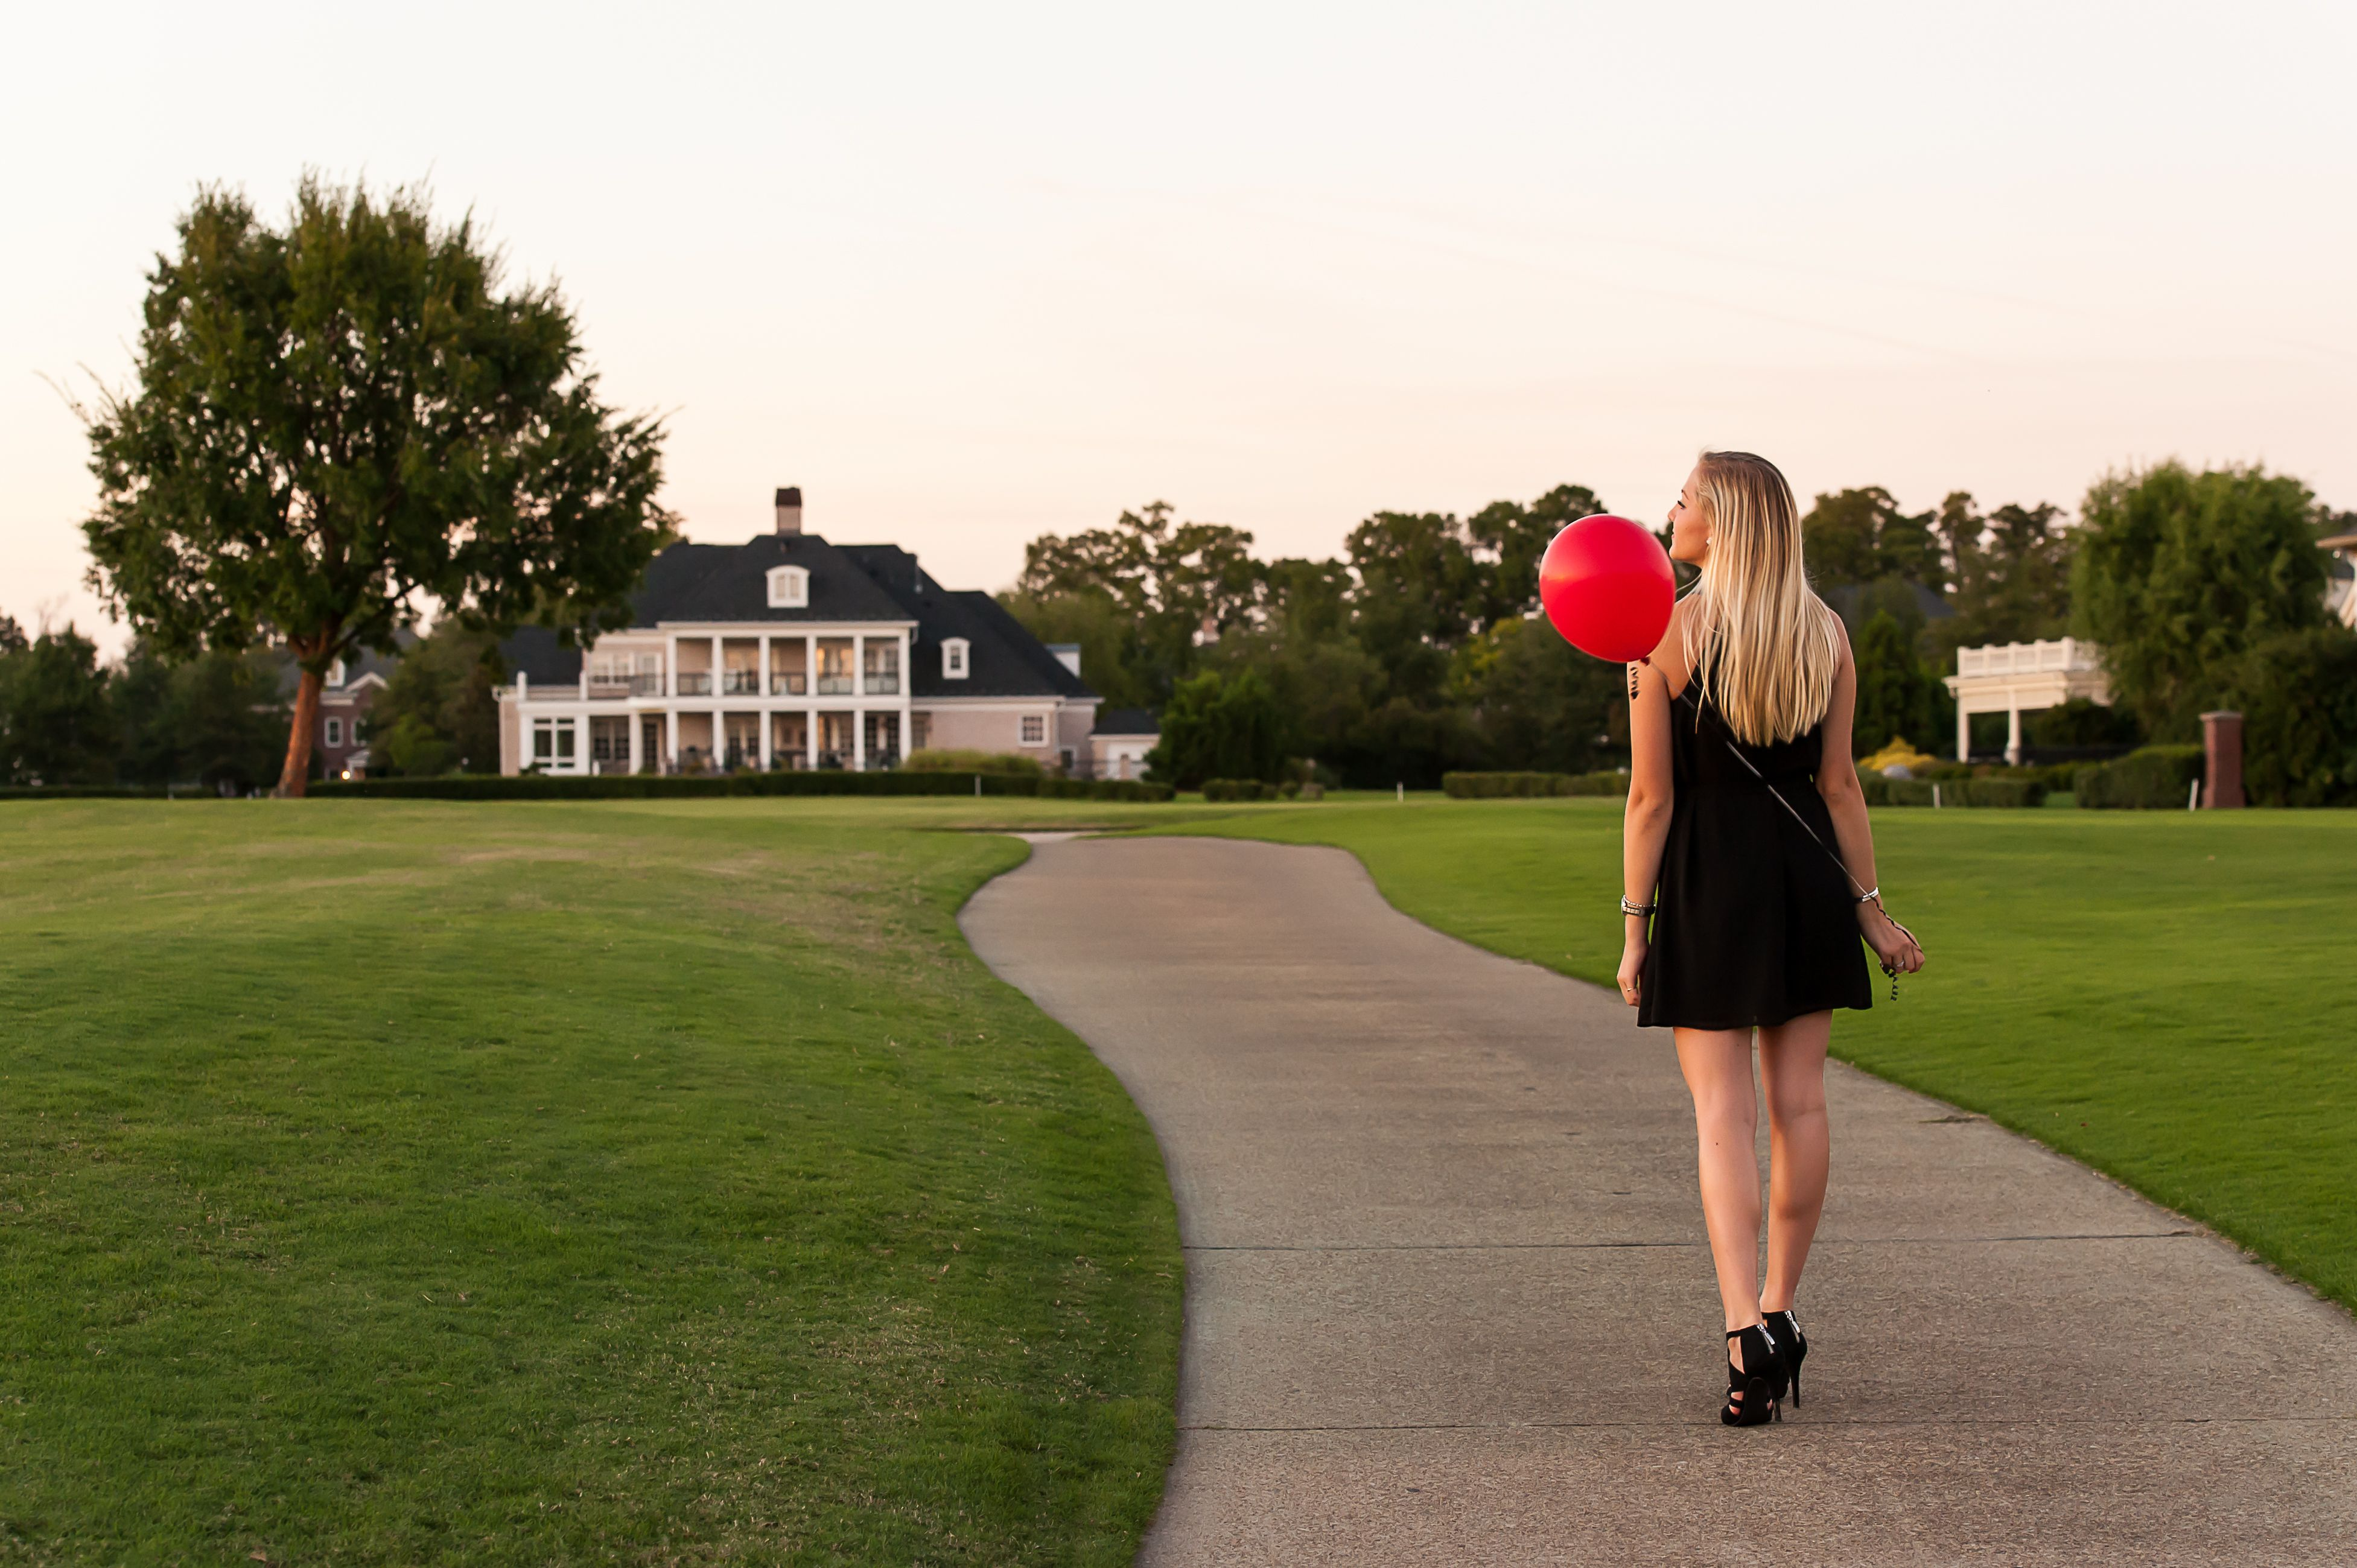 Such a bright future for this 2016 Senior! #seniorphotography #photography #senior #lifestylesession #governorsland #tworiverscountryclub #williamsburg #virginia #barbspencervisualartist #barbspencerphotography